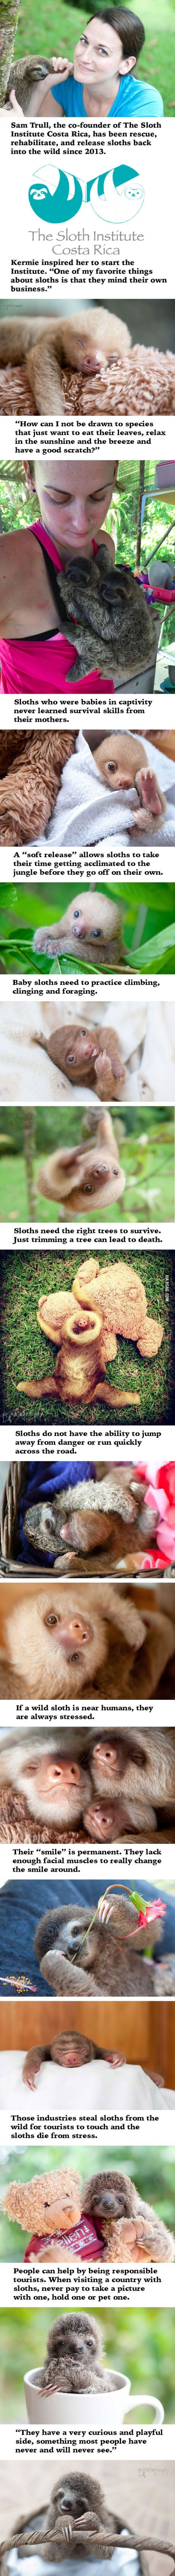 Welcome To The Sloth Institute Which Rehabilitate Orphaned Baby Sloths